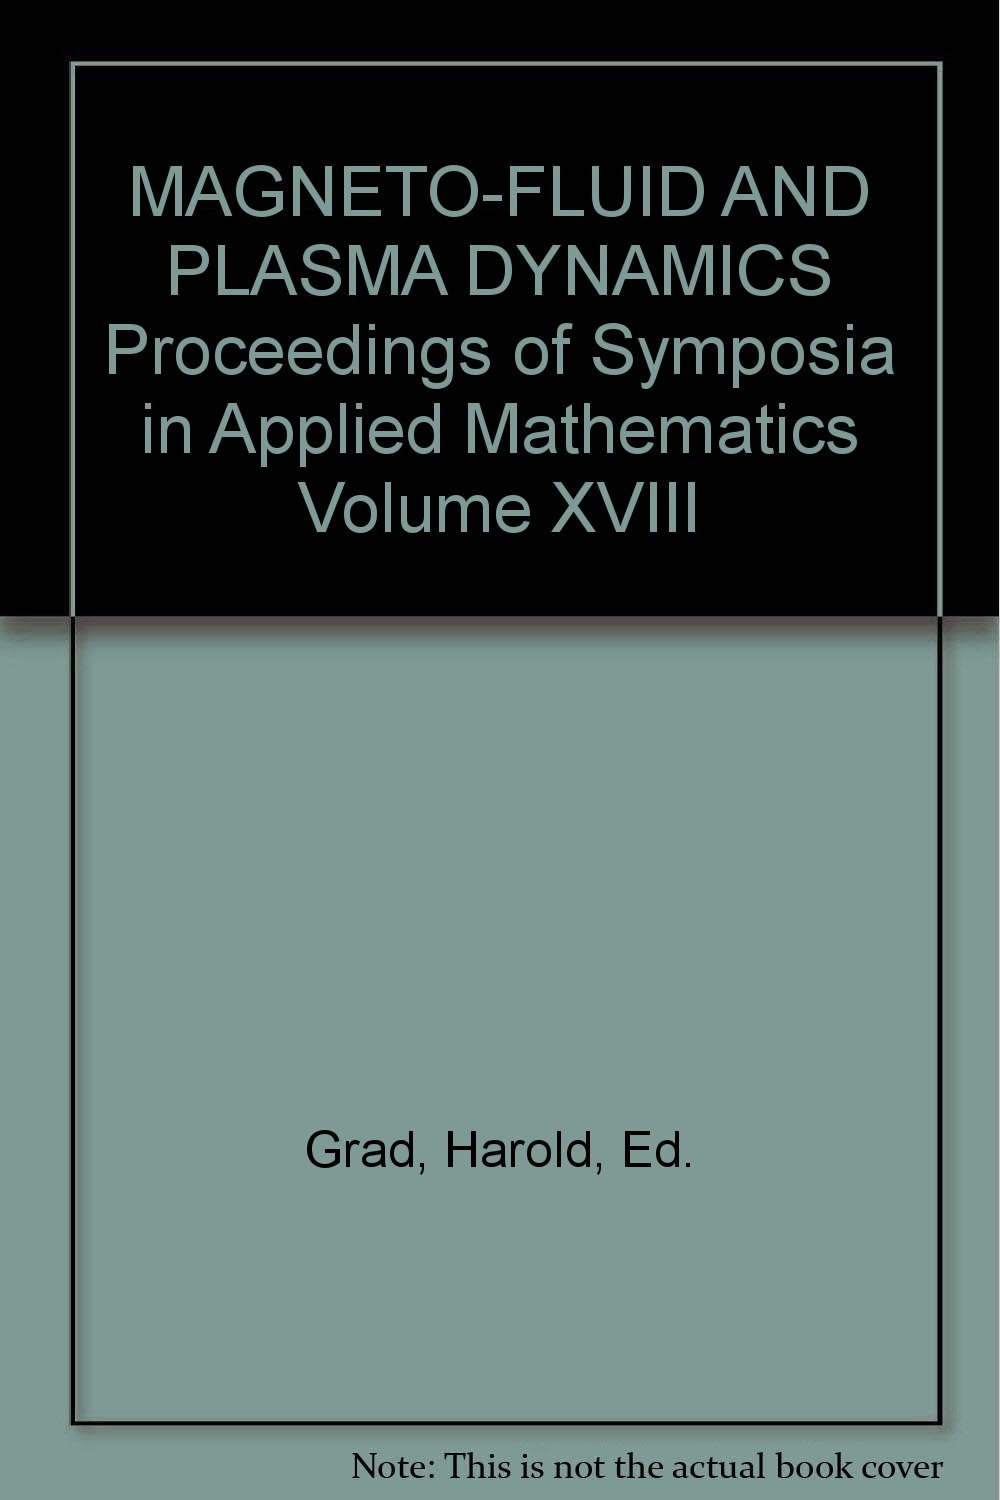 Magneto-fluid and plasma dynamics [electronic resource].